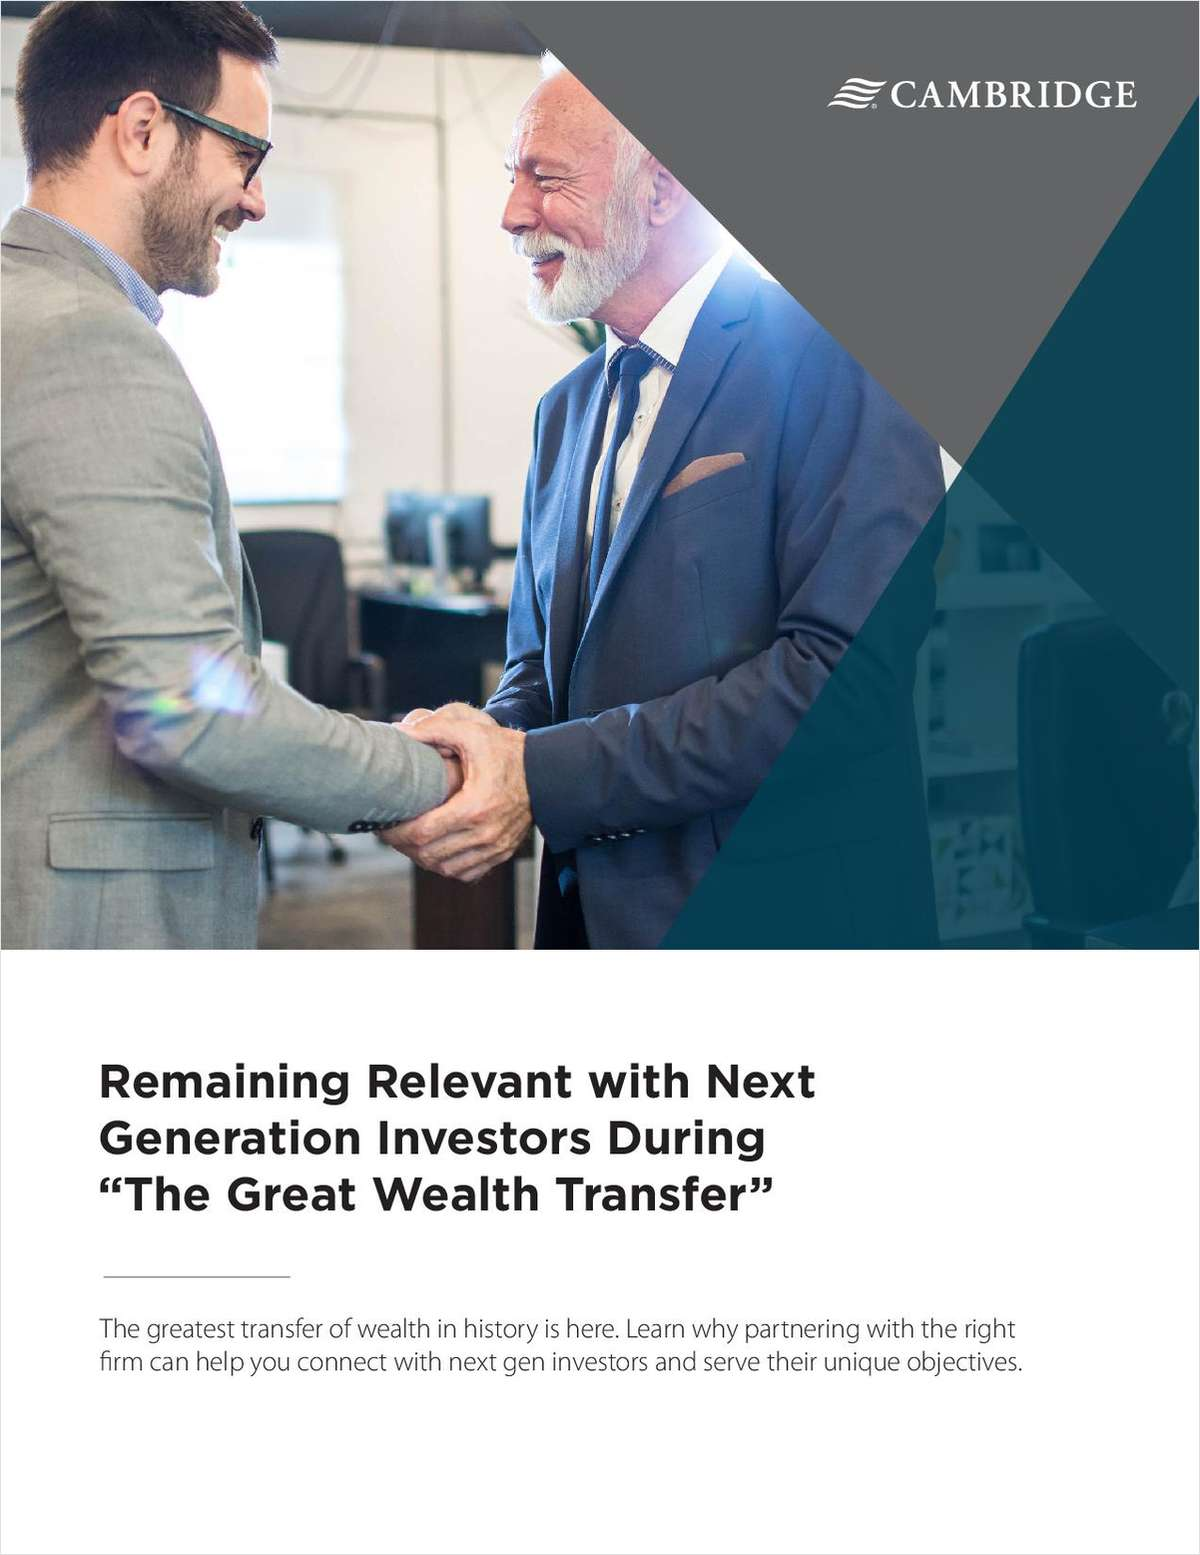 Remaining Relevant with Next Generation Investors During 'The Great Wealth Transfer'